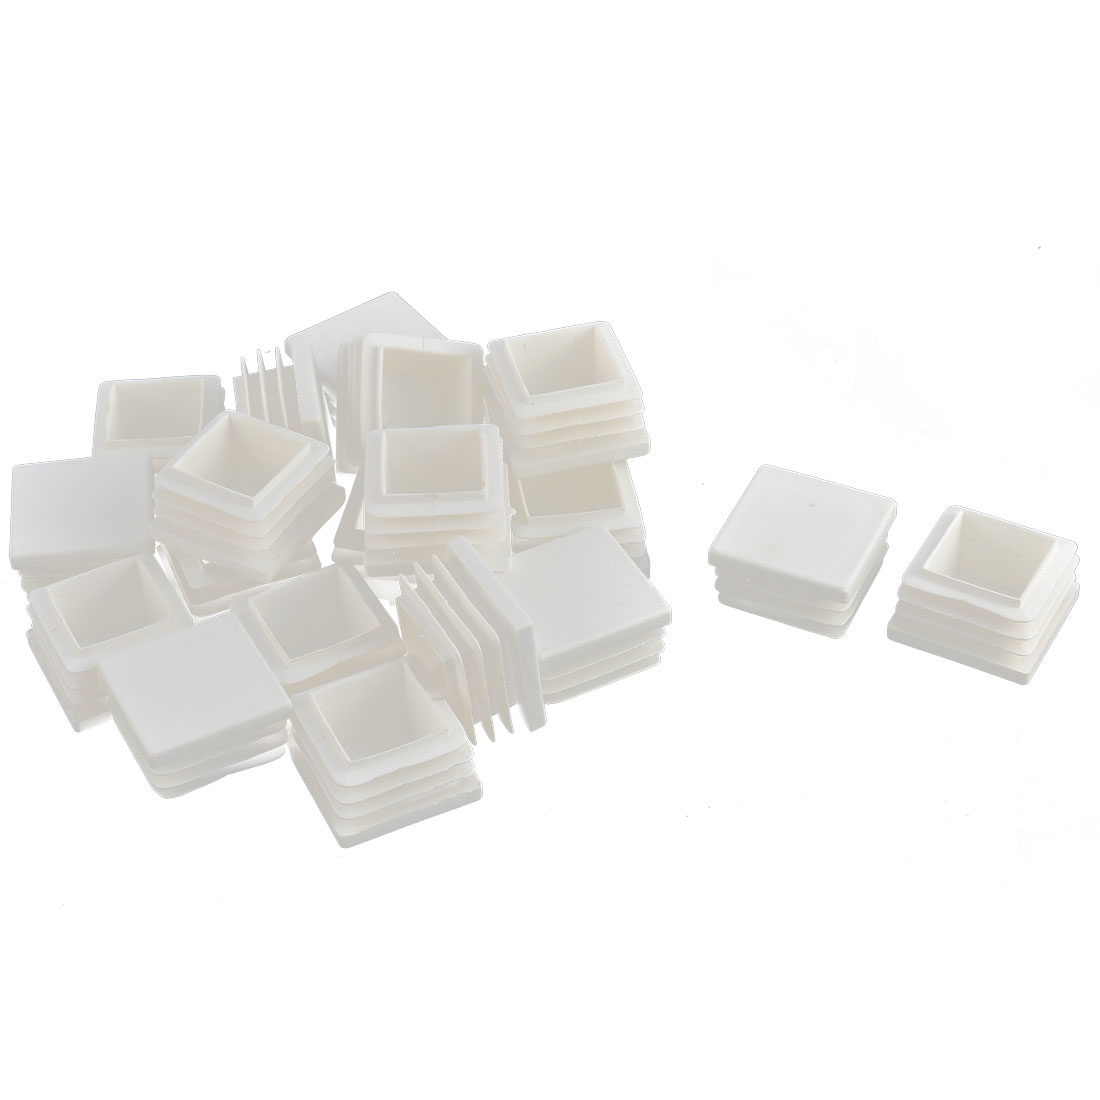 Furniture Table Chair Legs Plastic Square Tube Insert Cap Cover Protector White 30 x 30mm 20pcs